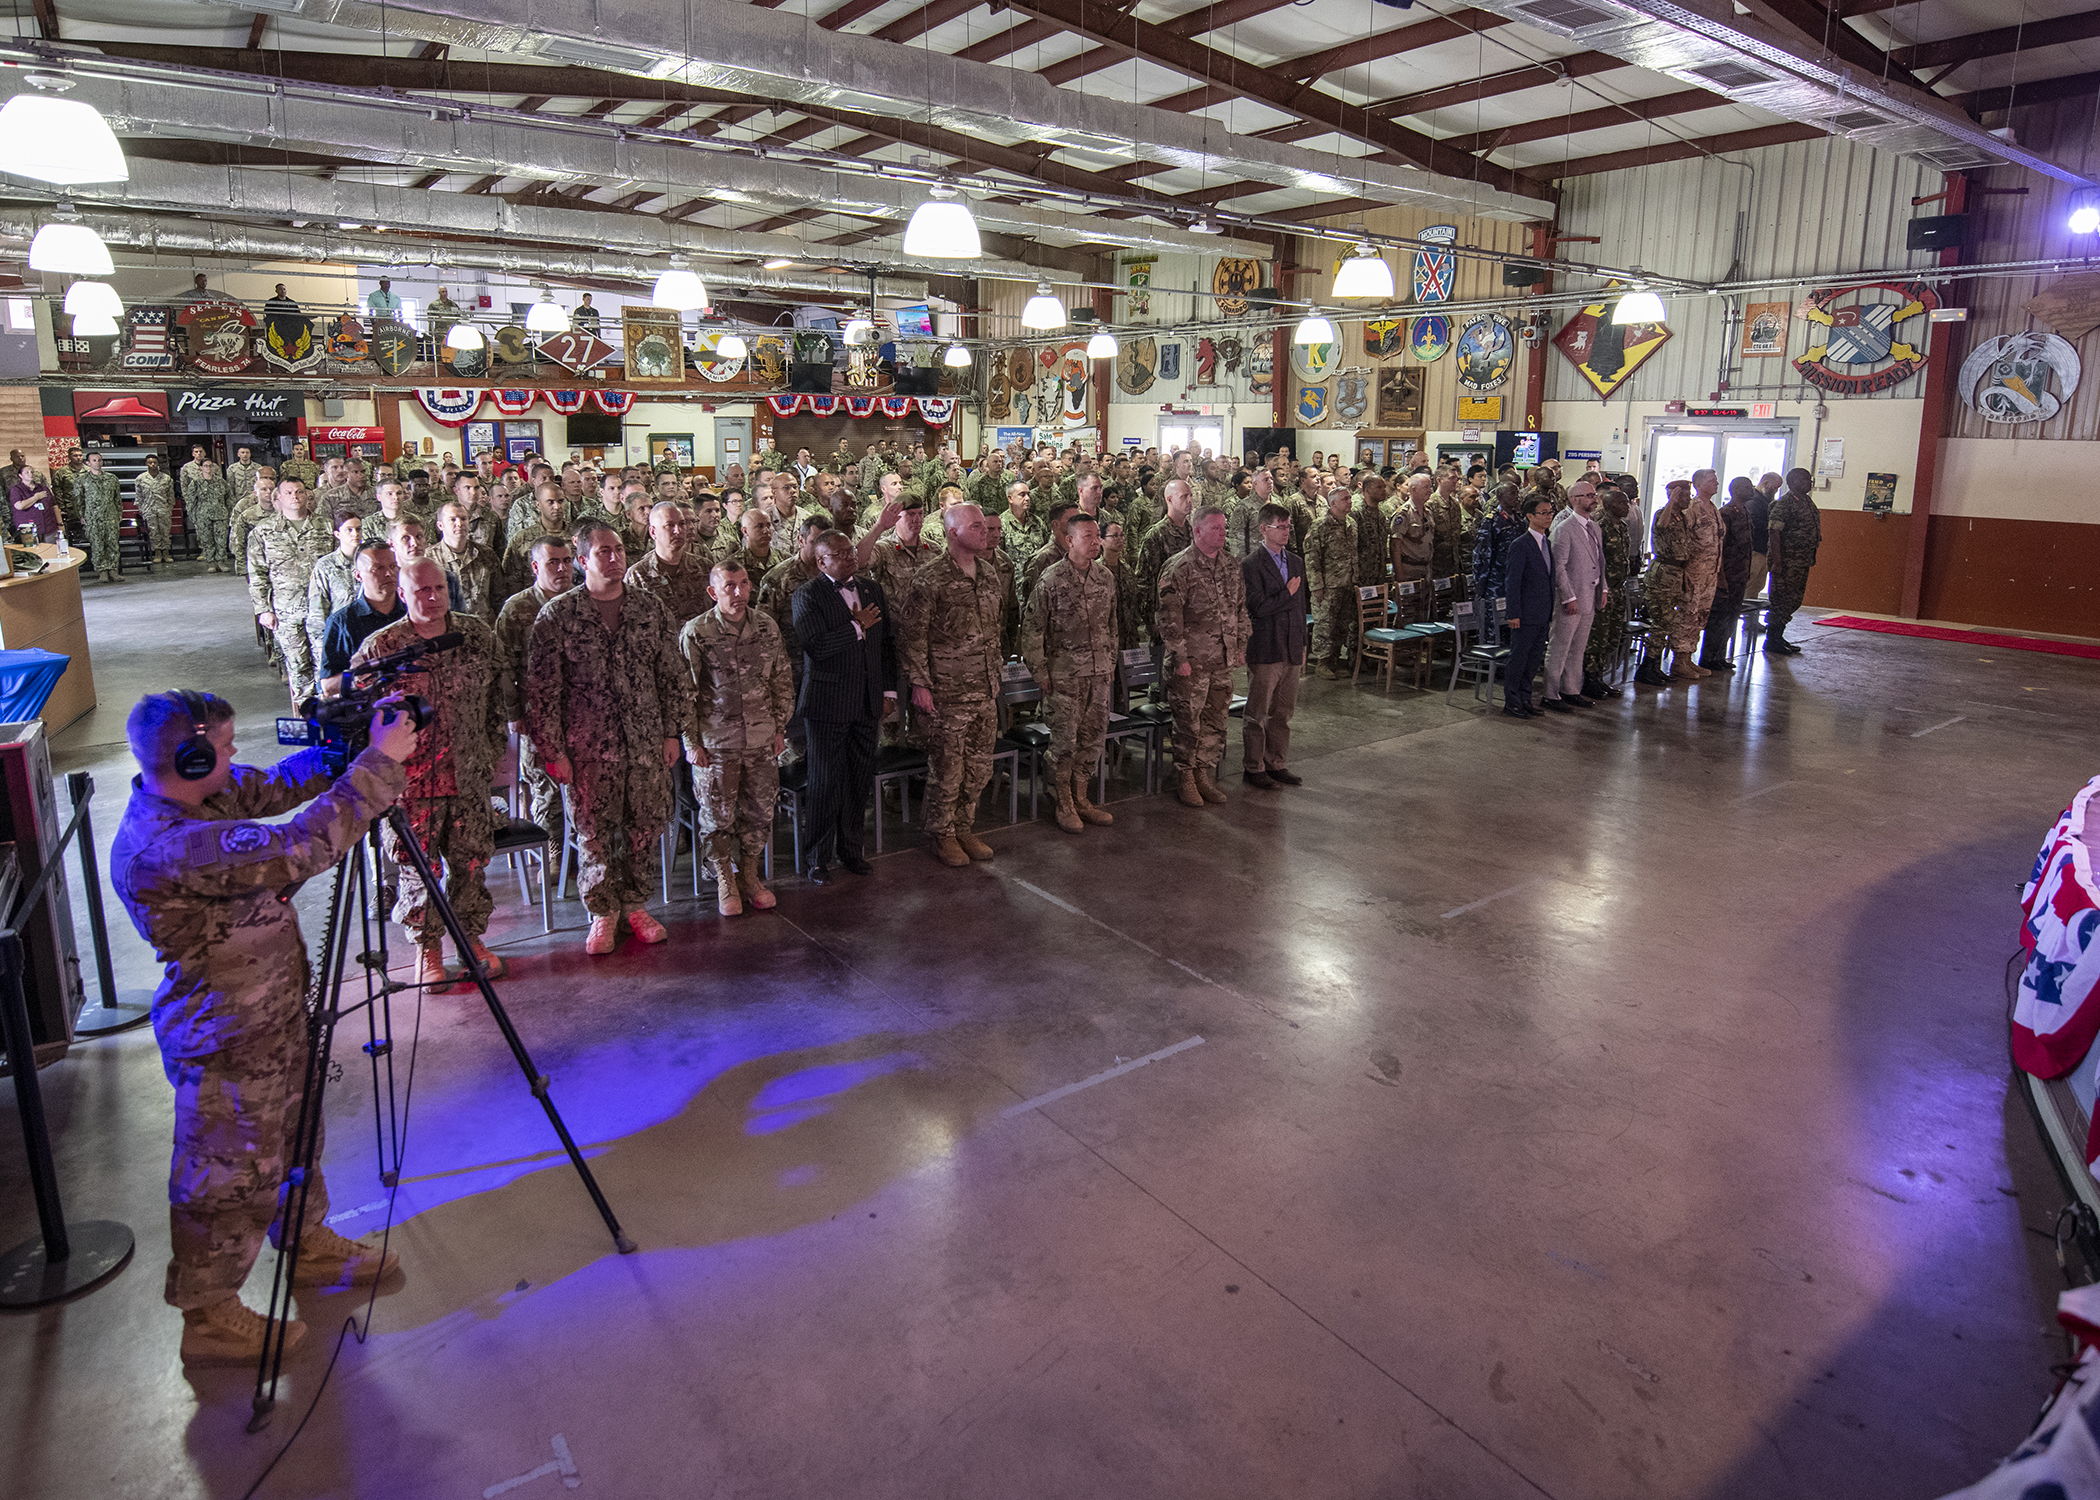 Combined Joint Task Force-Horn of Africa (CJTF-HOA) personnel, joint partners and members of the international community stand at attention during a change of command ceremony for CJTF-HOA at Camp Lemonnier, Djibouti, June 12, 2019. U.S. Army Maj. Gen. James D. Craig, outgoing commanding general of CJTF-HOA, transferred responsibility to U.S. Army Maj. Gen. Michael D. Turello in the ceremony with U.S. Marine Corps Gen. Thomas Waldhauser, commander of U.S. Africa Command, as the presiding officer. (U.S. Air Force photo by Tech. Sgt. Shawn Nickel)